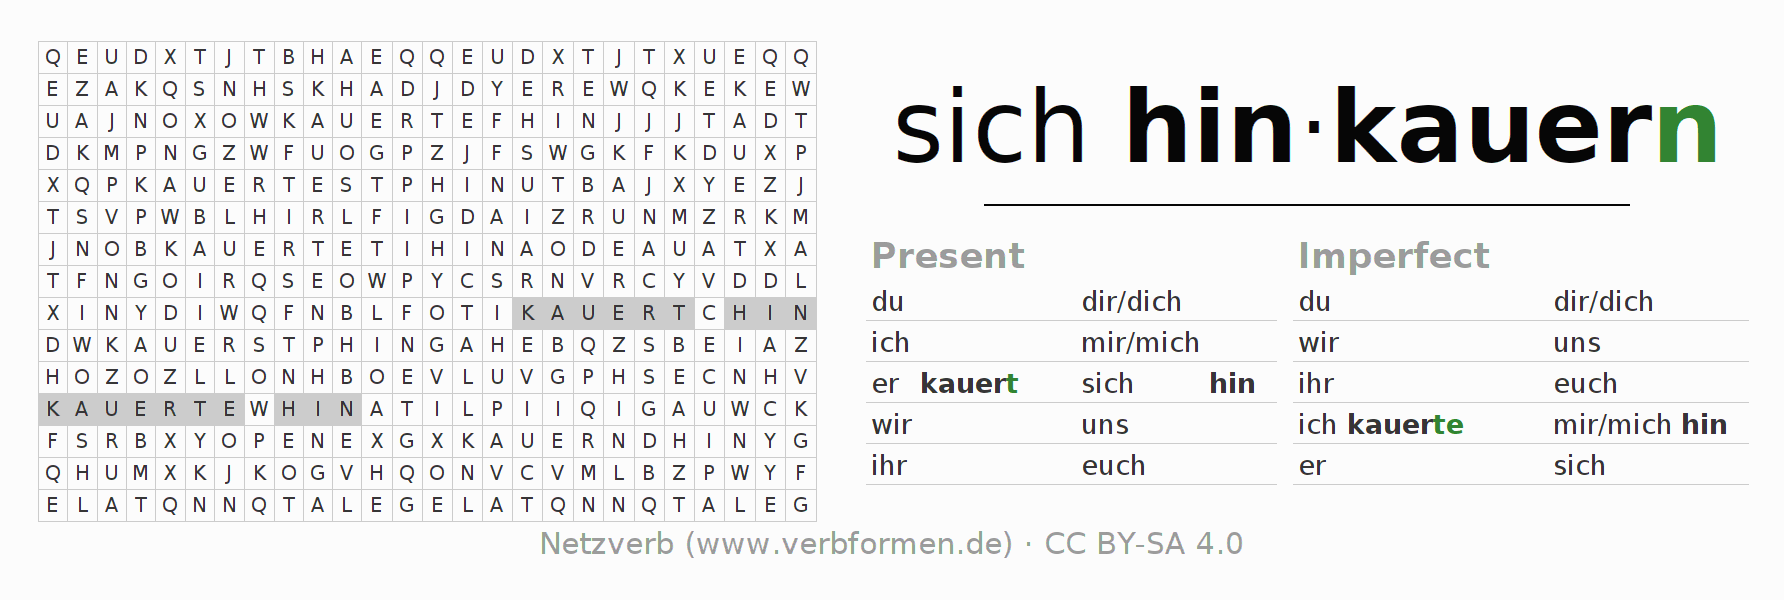 Word search puzzle for the conjugation of the verb sich hinkauern